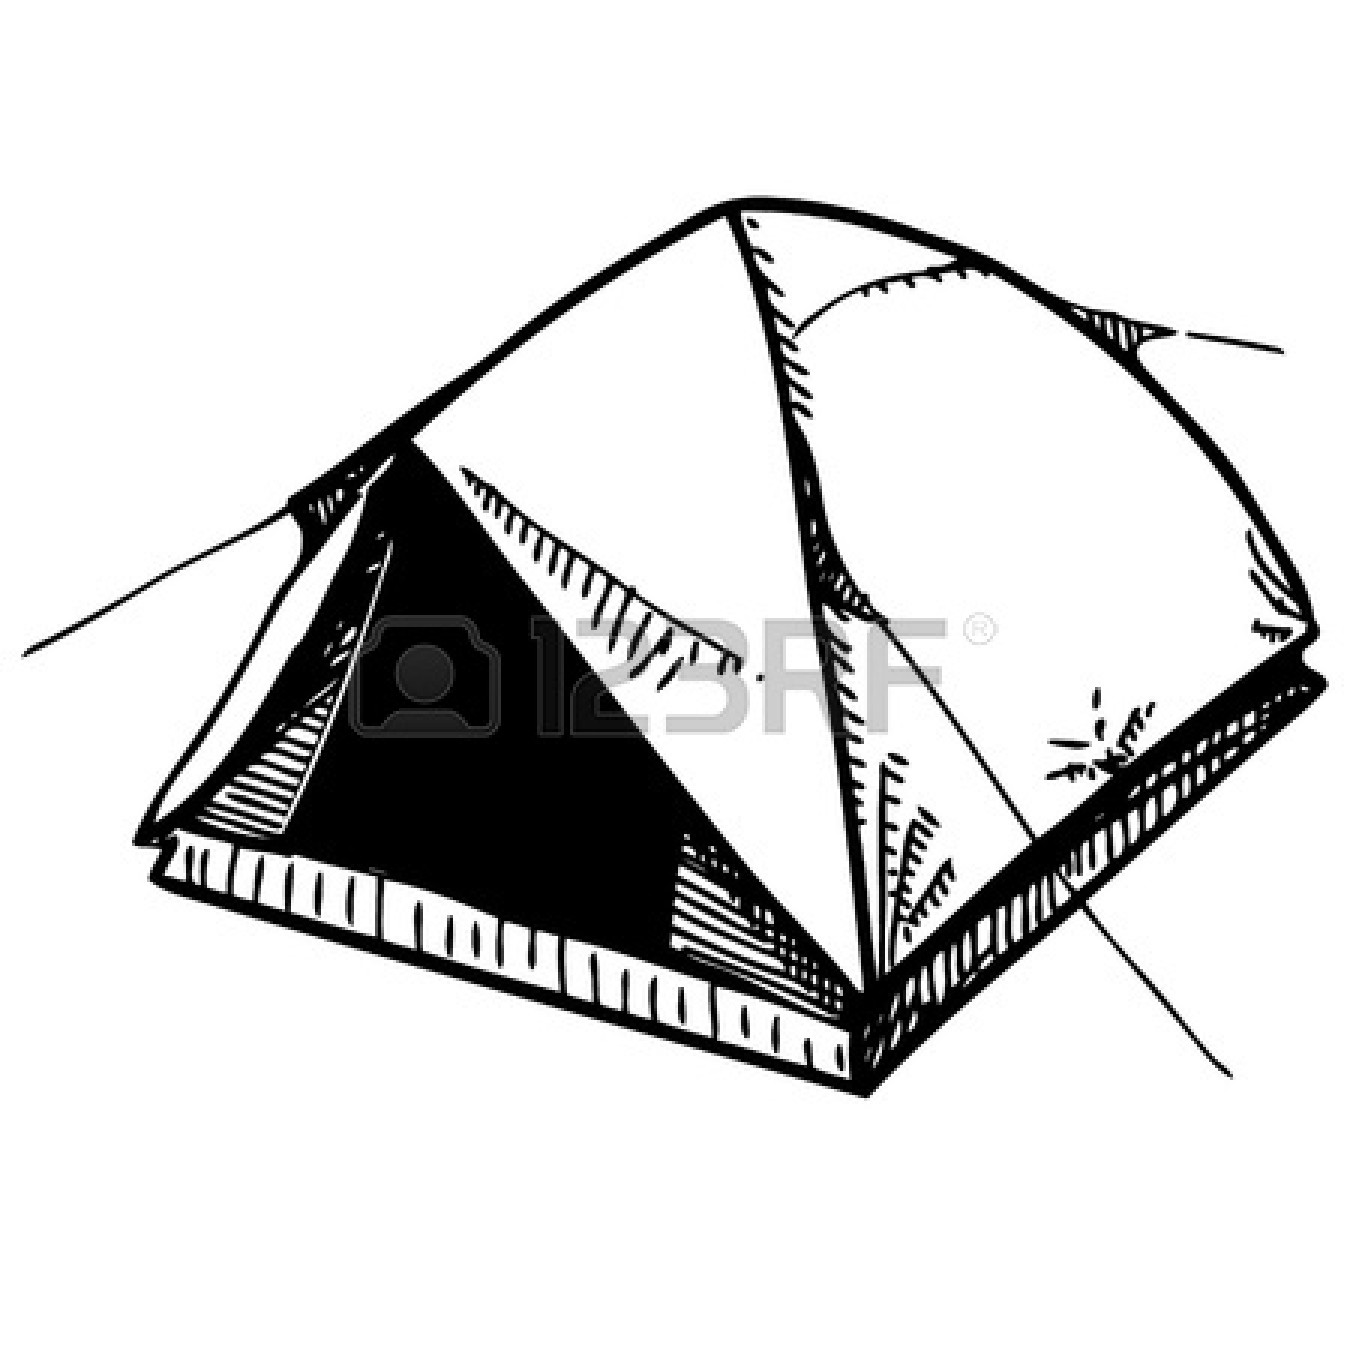 Cartoon Campfire And Tent   Clipart Panda   Free Clipart Images